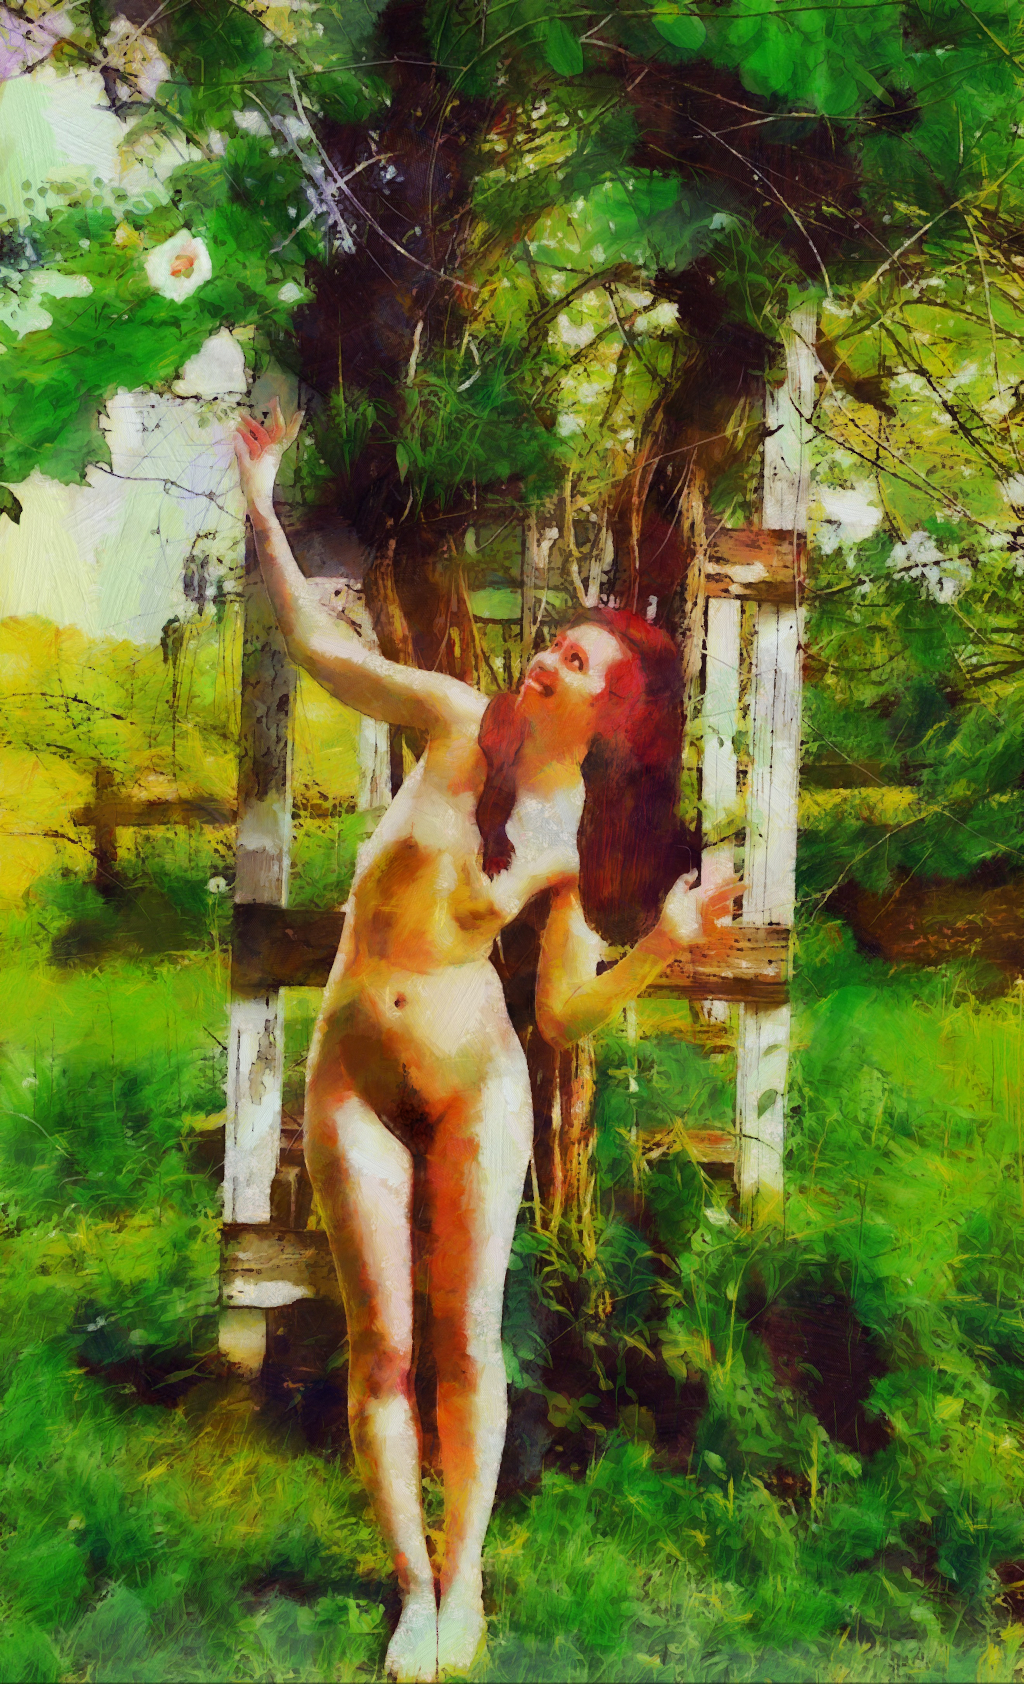 Rose of Sharon: art of a nude woman picking a blossom of a Rose of Sharon